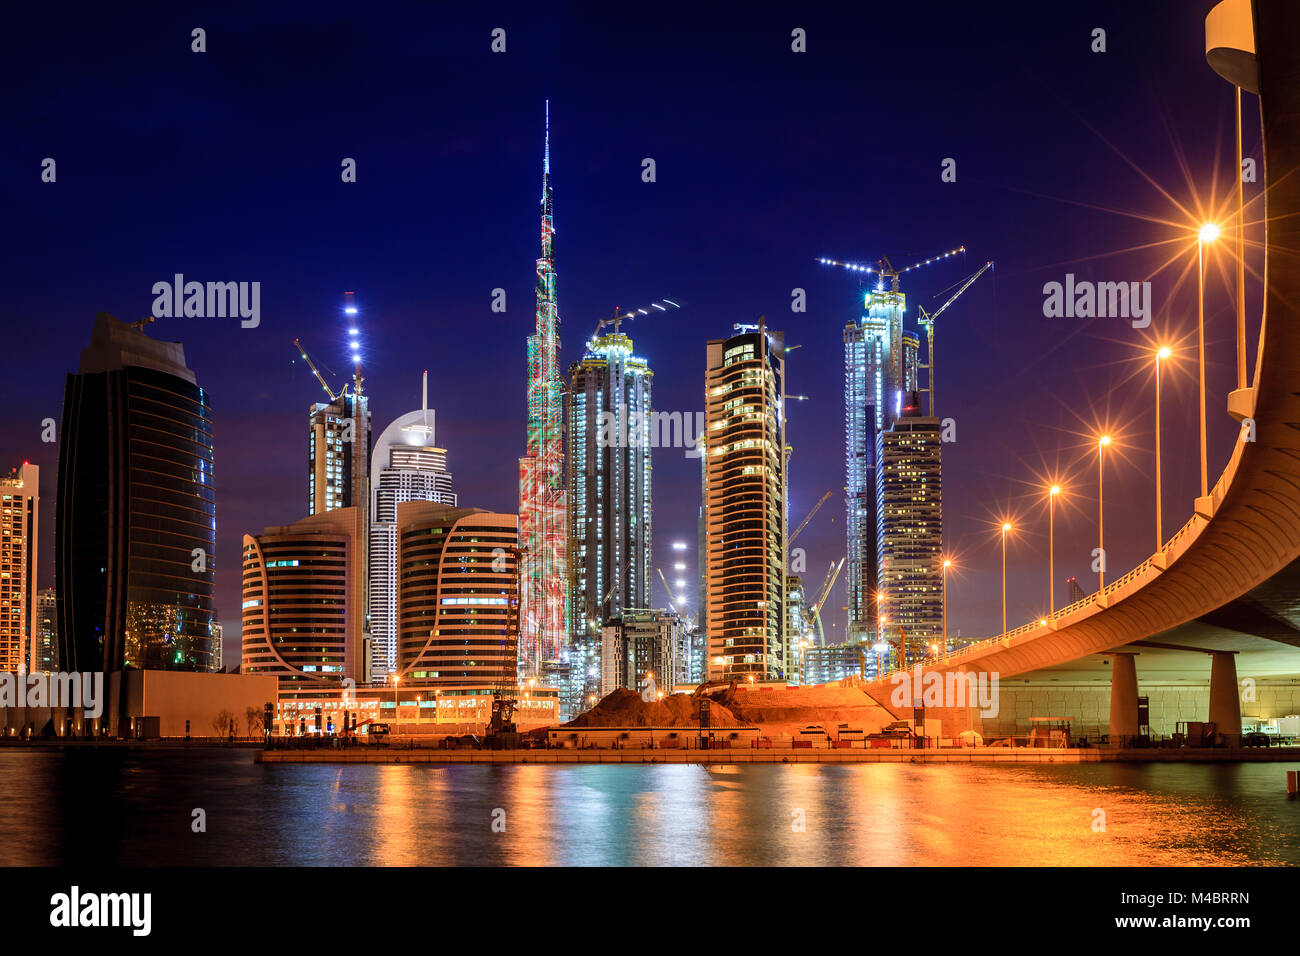 View of Dubai downtown skyline at night - Stock Image